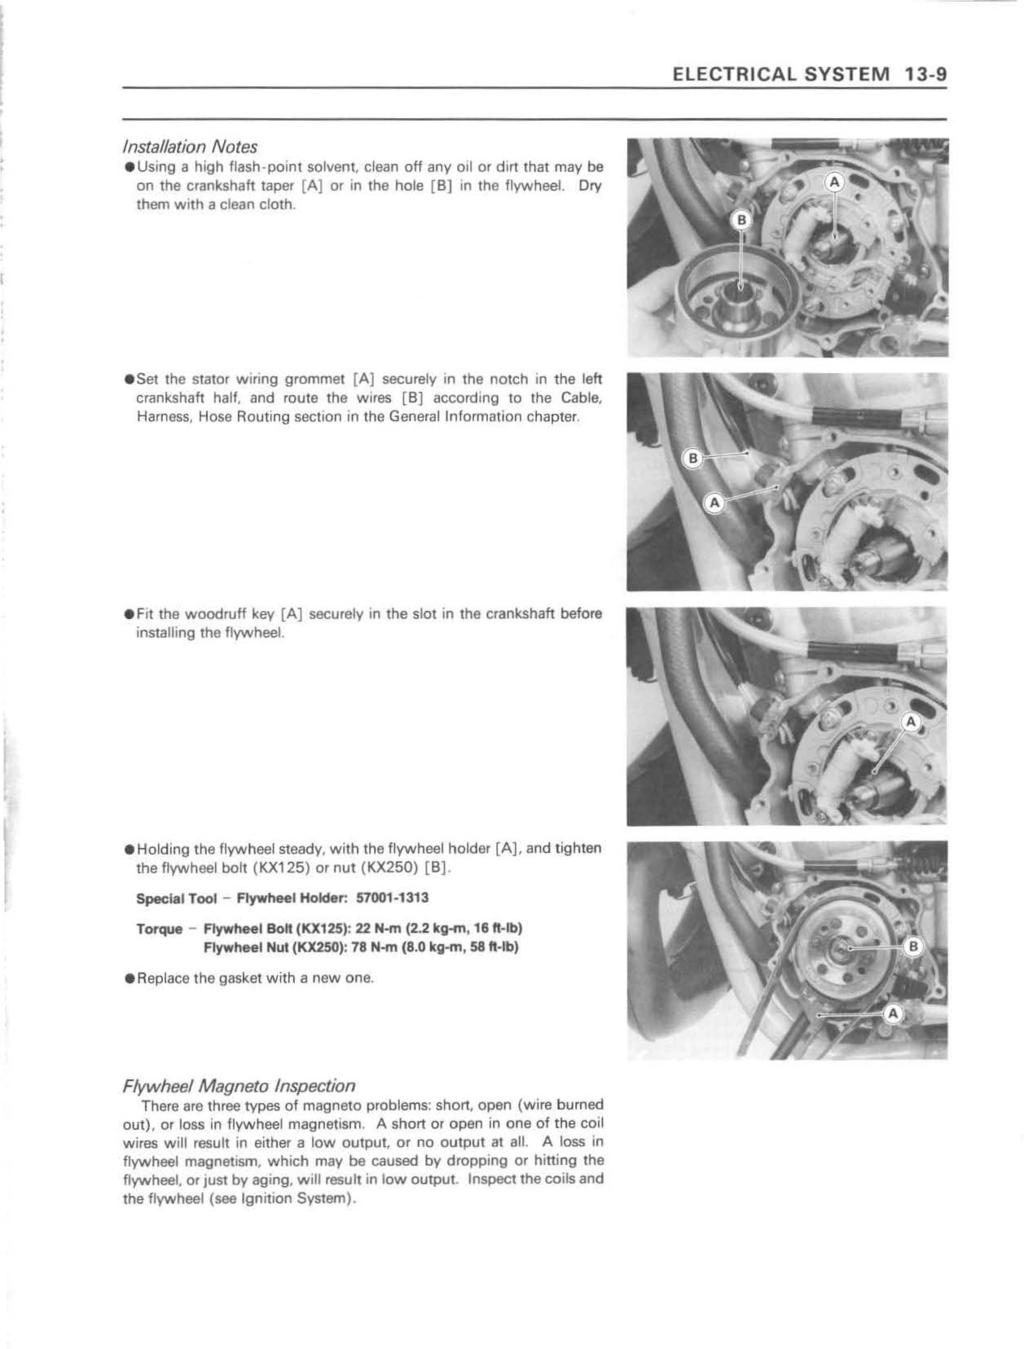 quick reference guide pdf electrical system 13 9 installation notes using a high flash point solvent